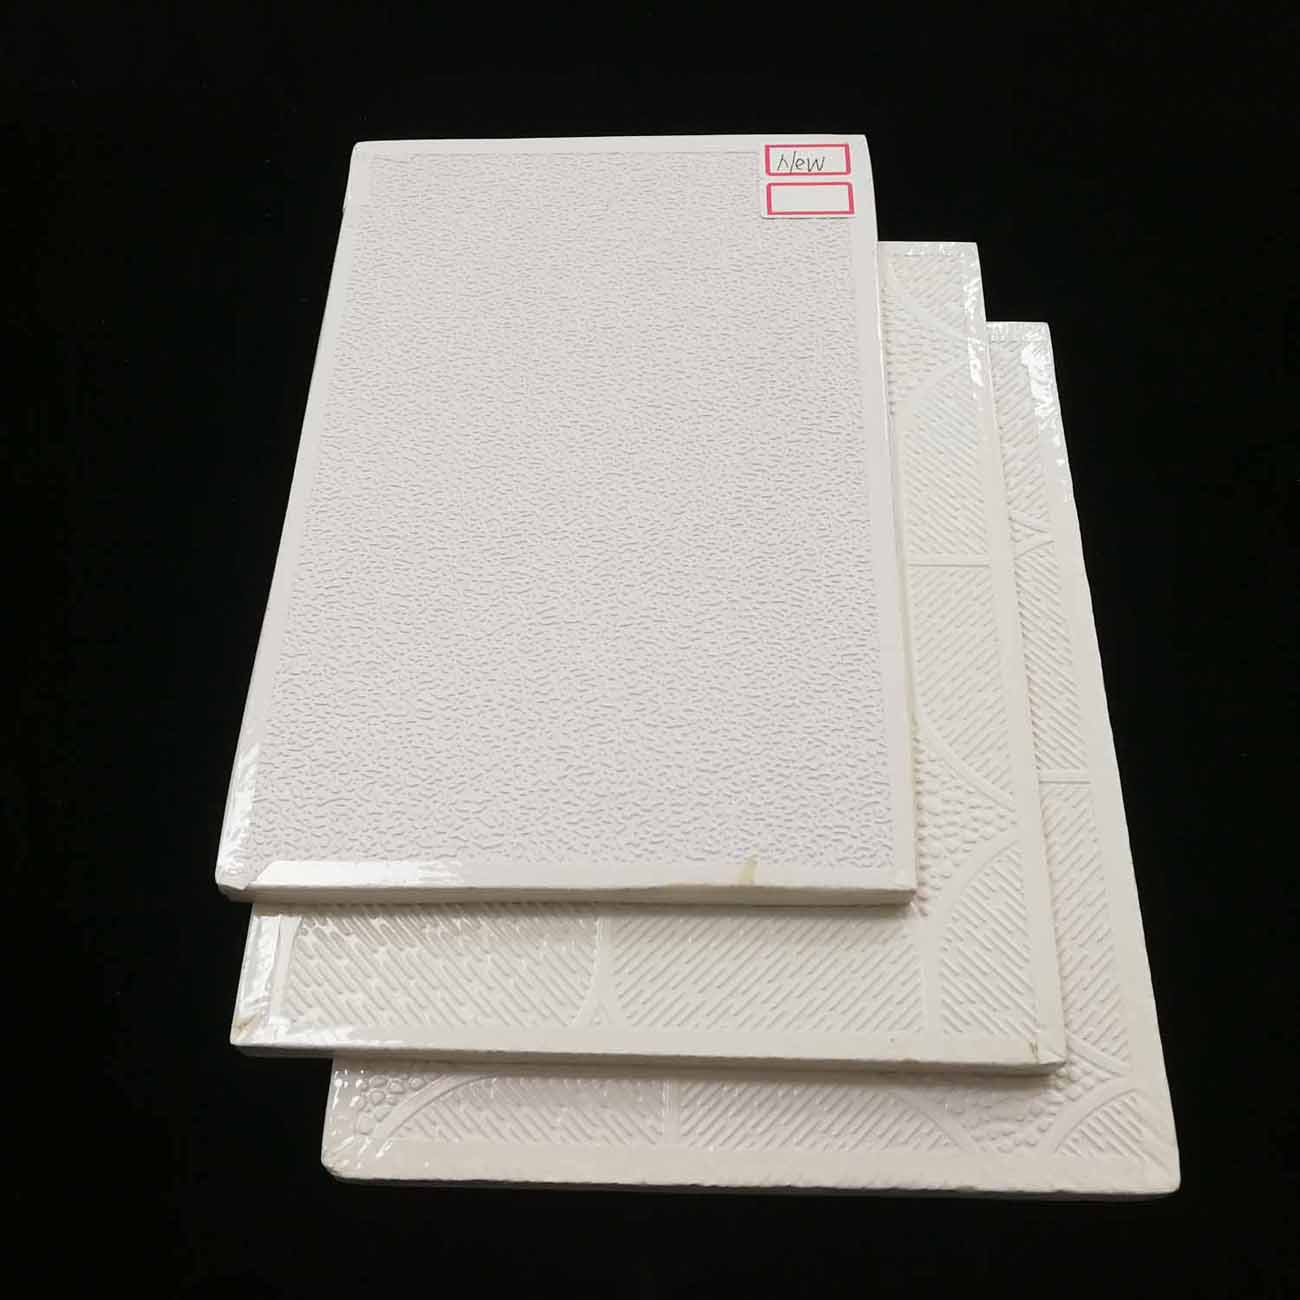 Multiple Specifications High Quality PVC Plastic Drop Perforated Plasterboard Fireproof Acoustic Ceiling Tiles